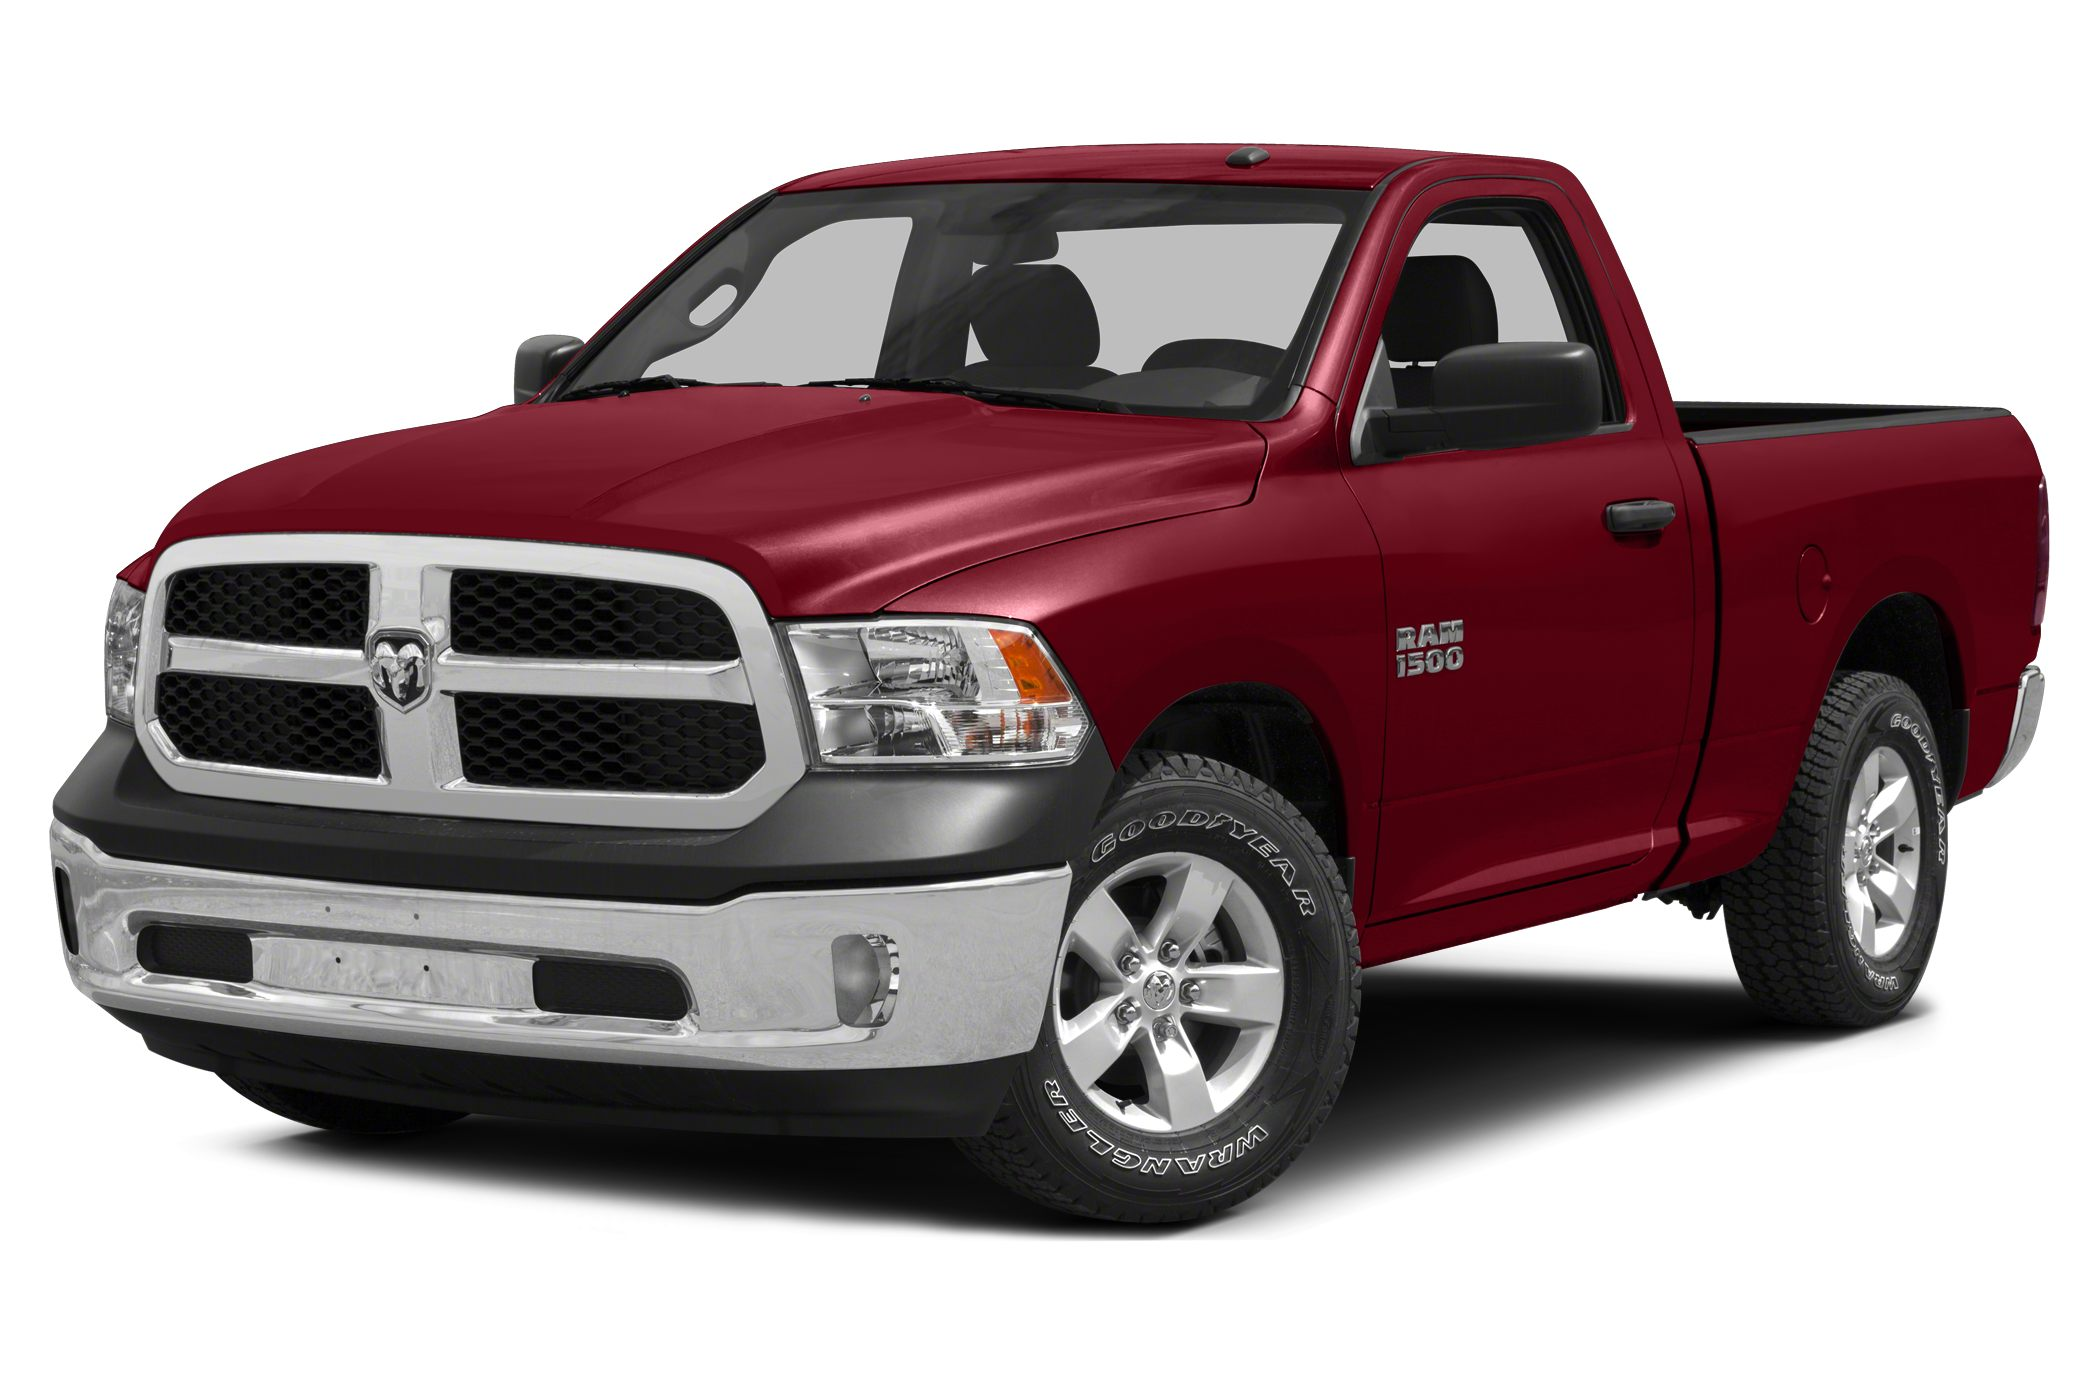 2015 RAM 1500 Tradesman/Express Crew Cab Pickup for sale in Castle Rock for $38,240 with 0 miles.